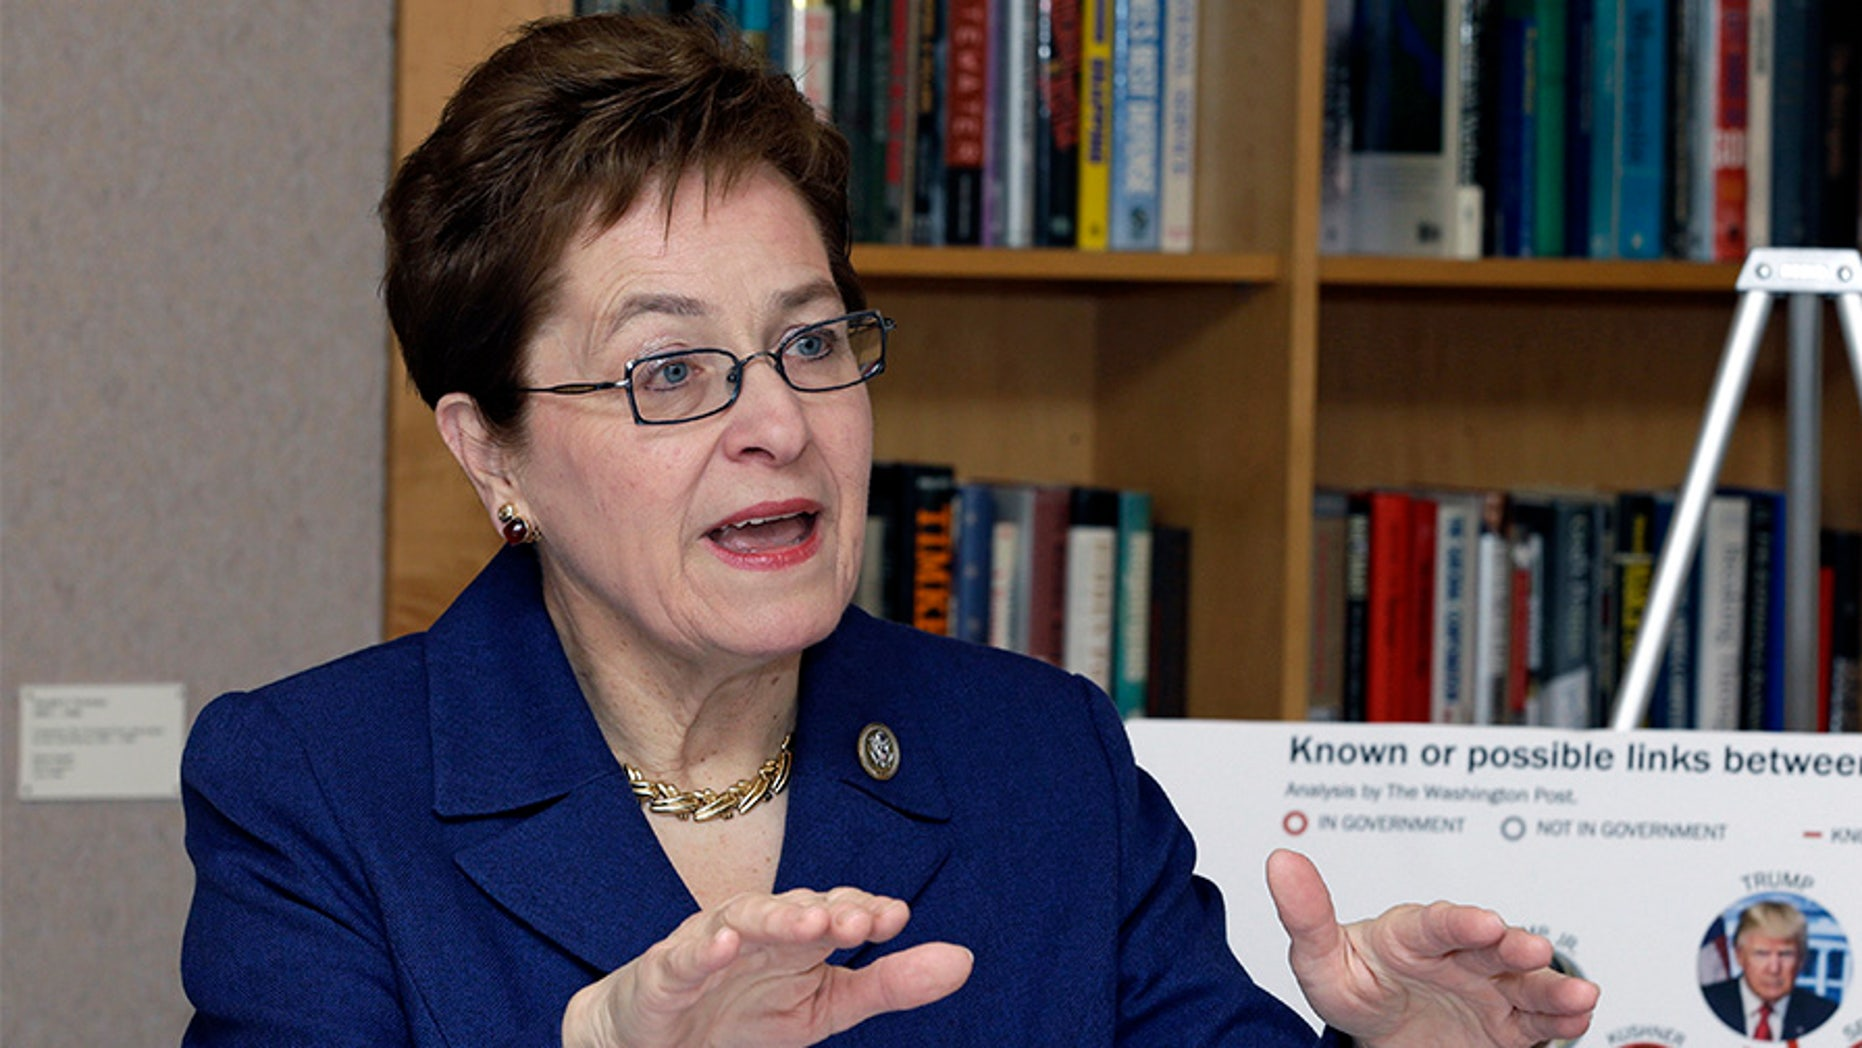 Rep. Marcy Kaptur, D-Ohio, speaks during a press conference Monday, March 6, 2017